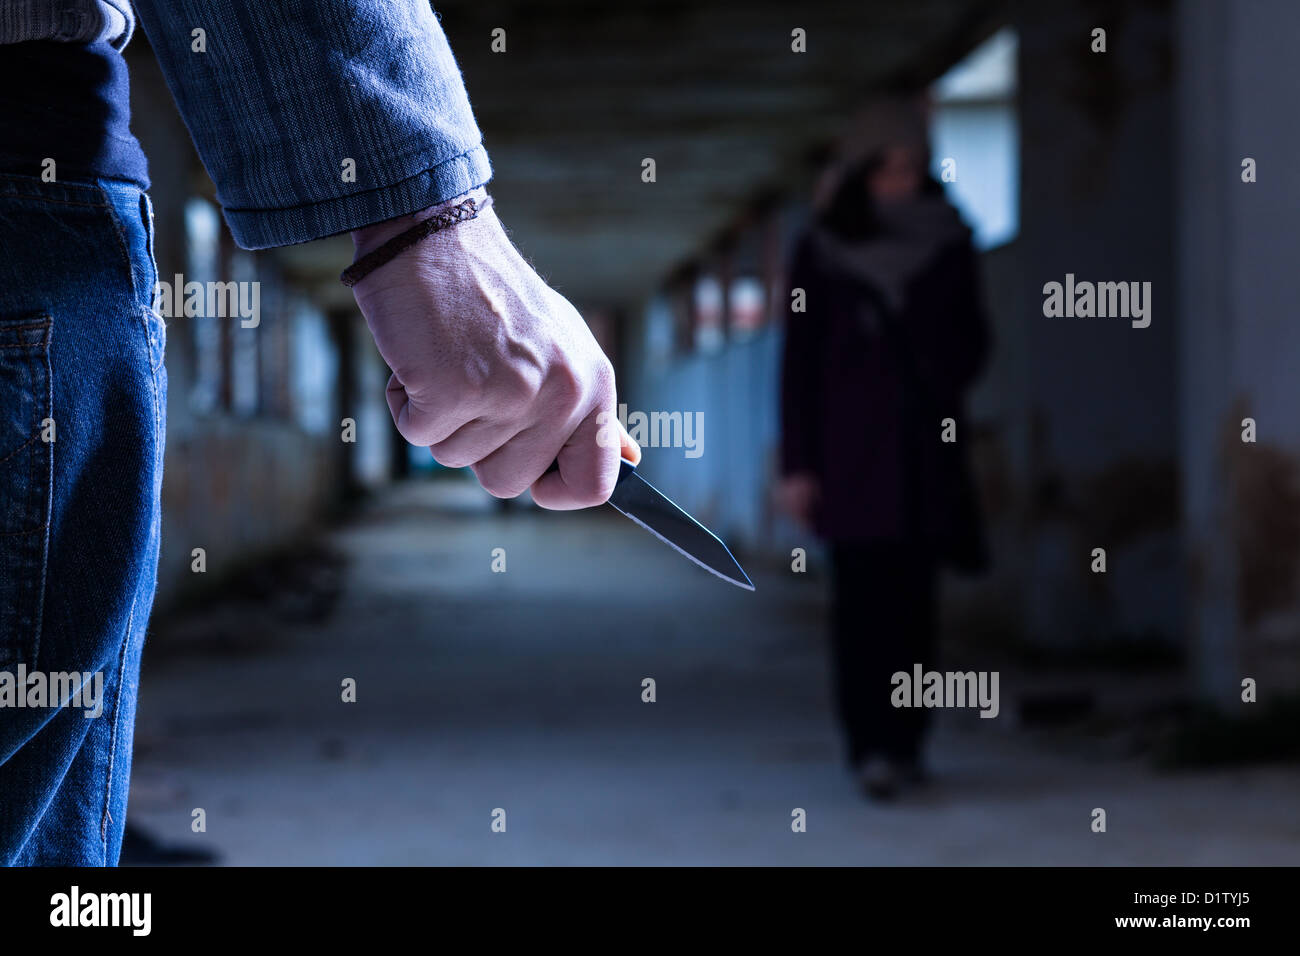 Criminal with Knife Waiting for a Woman - Stock Image